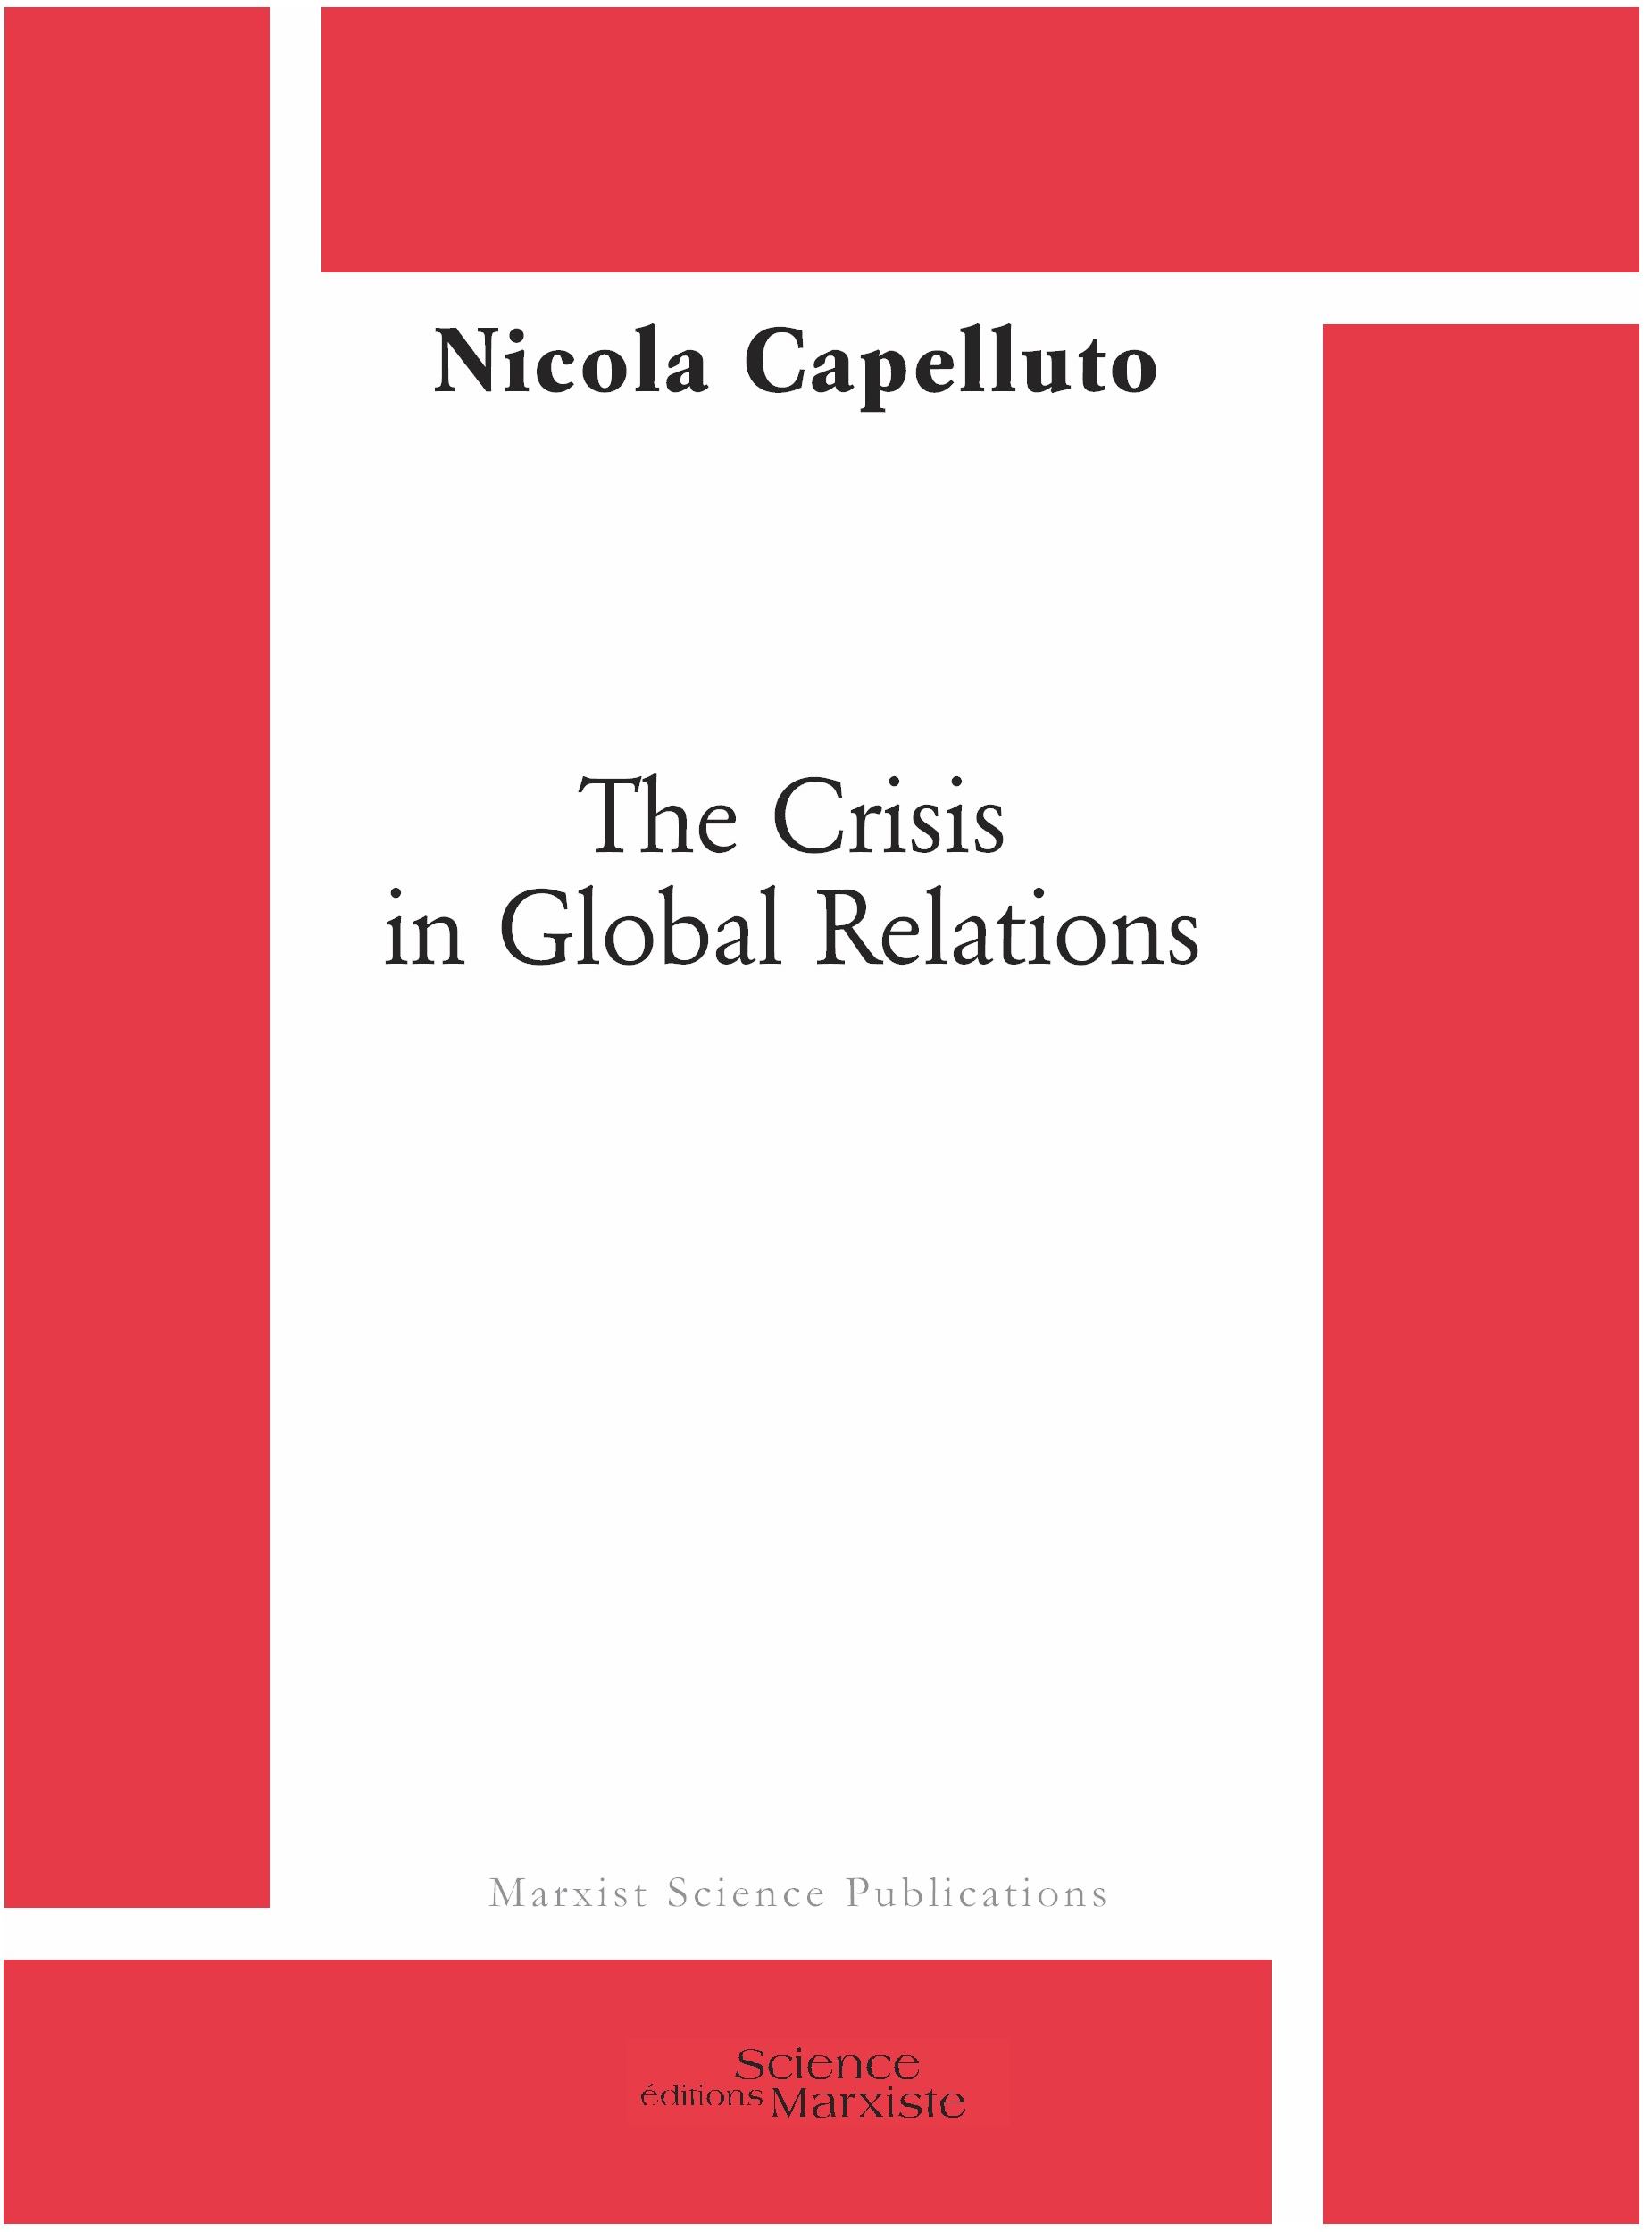 The Crisis in Global Relations